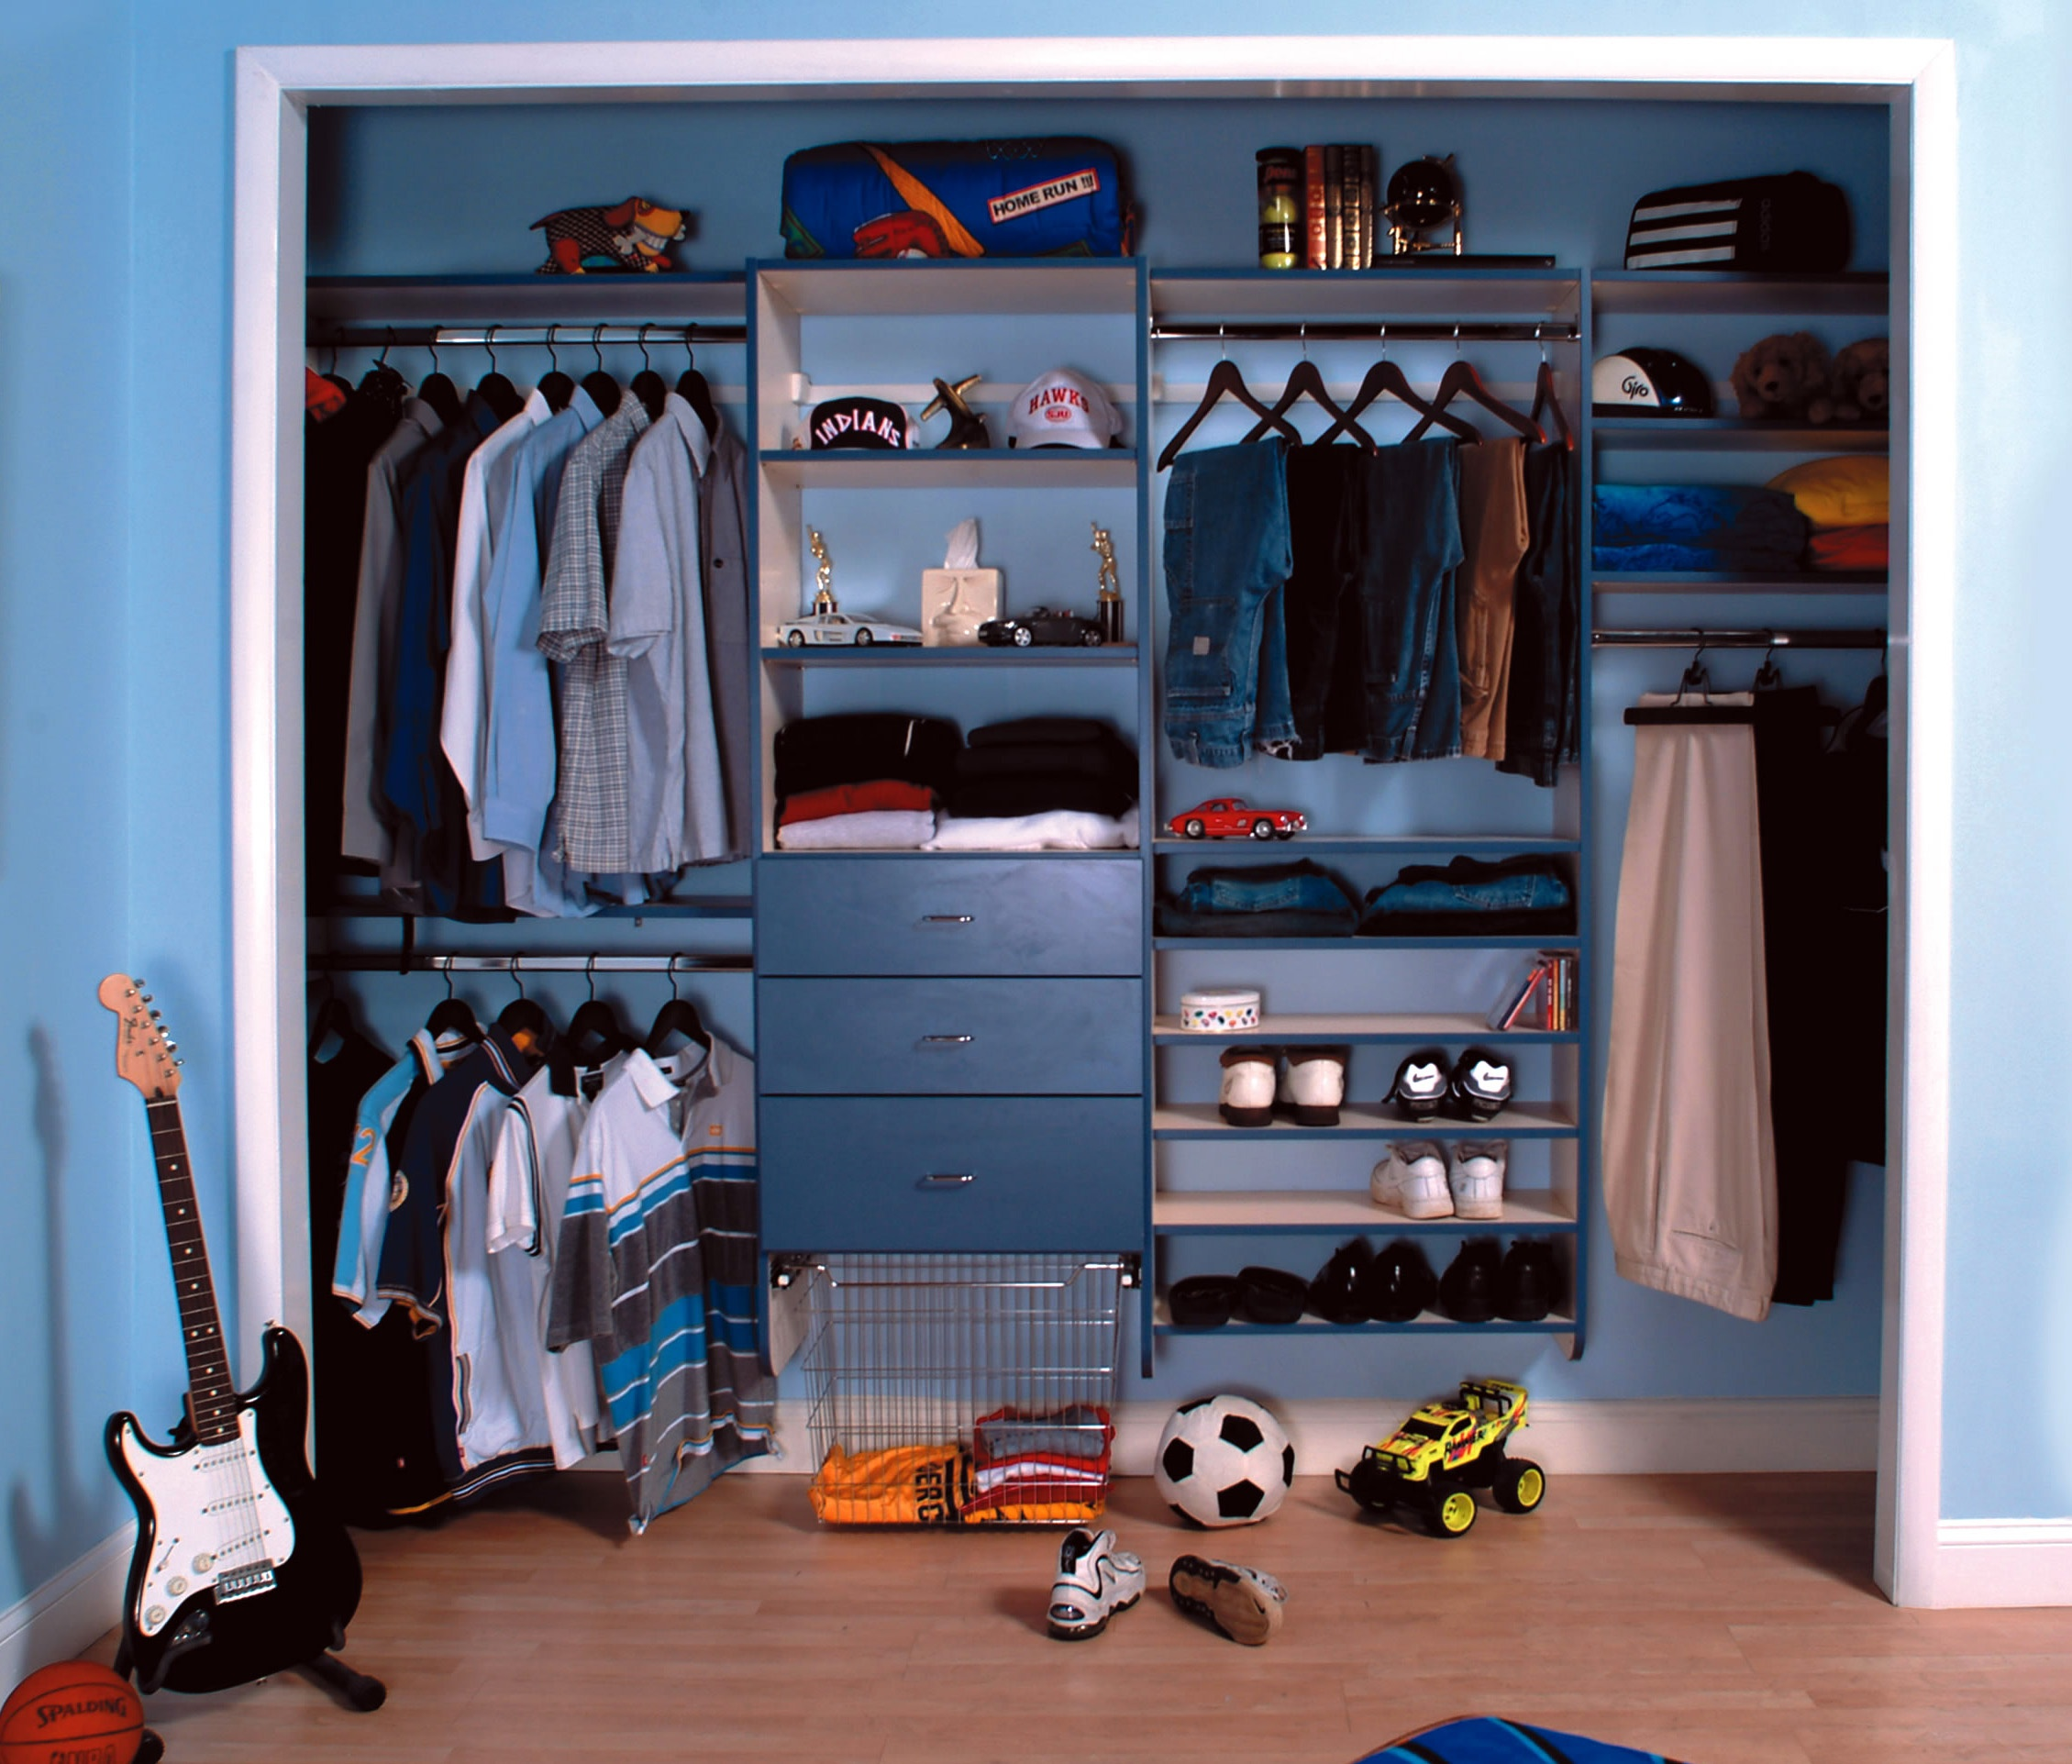 How I Learned to Stop Worrying and Love My Closets